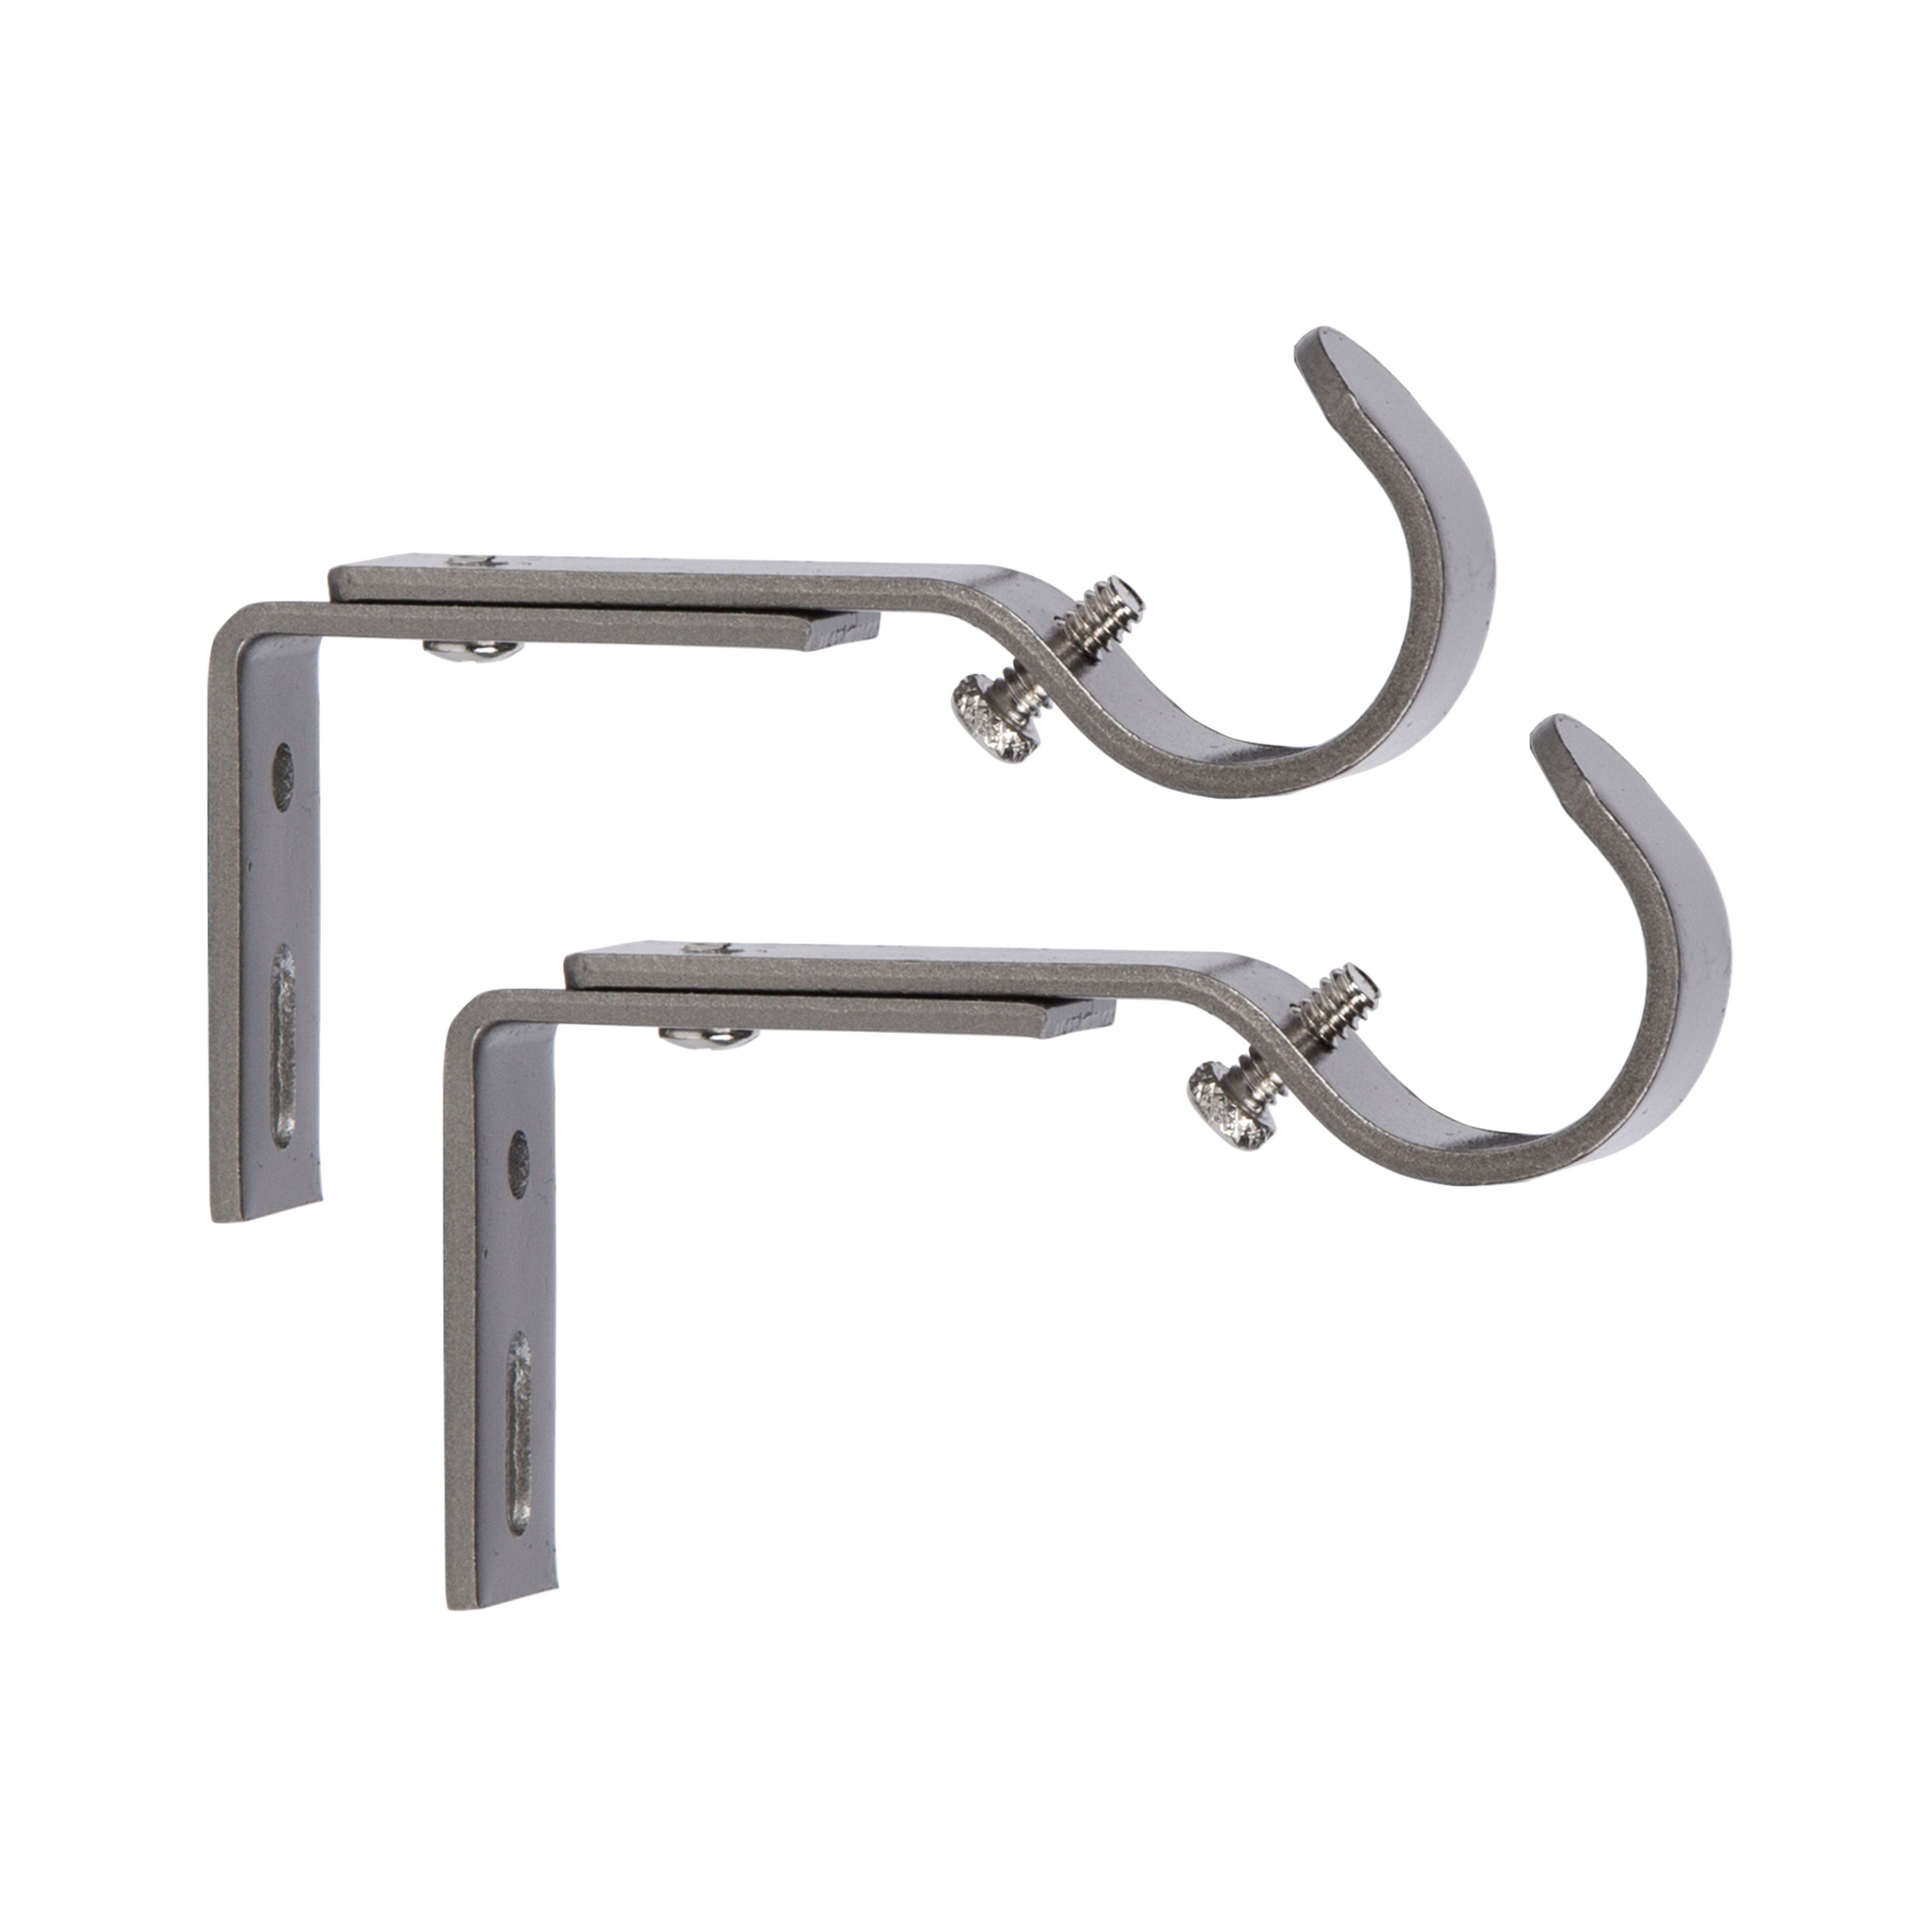 """Better Homes & Gardens Adjustable Mounting Brackets for 3/4"""" or 1"""" Diameter Curtain Rod, Pewter Finish, Set of 2"""